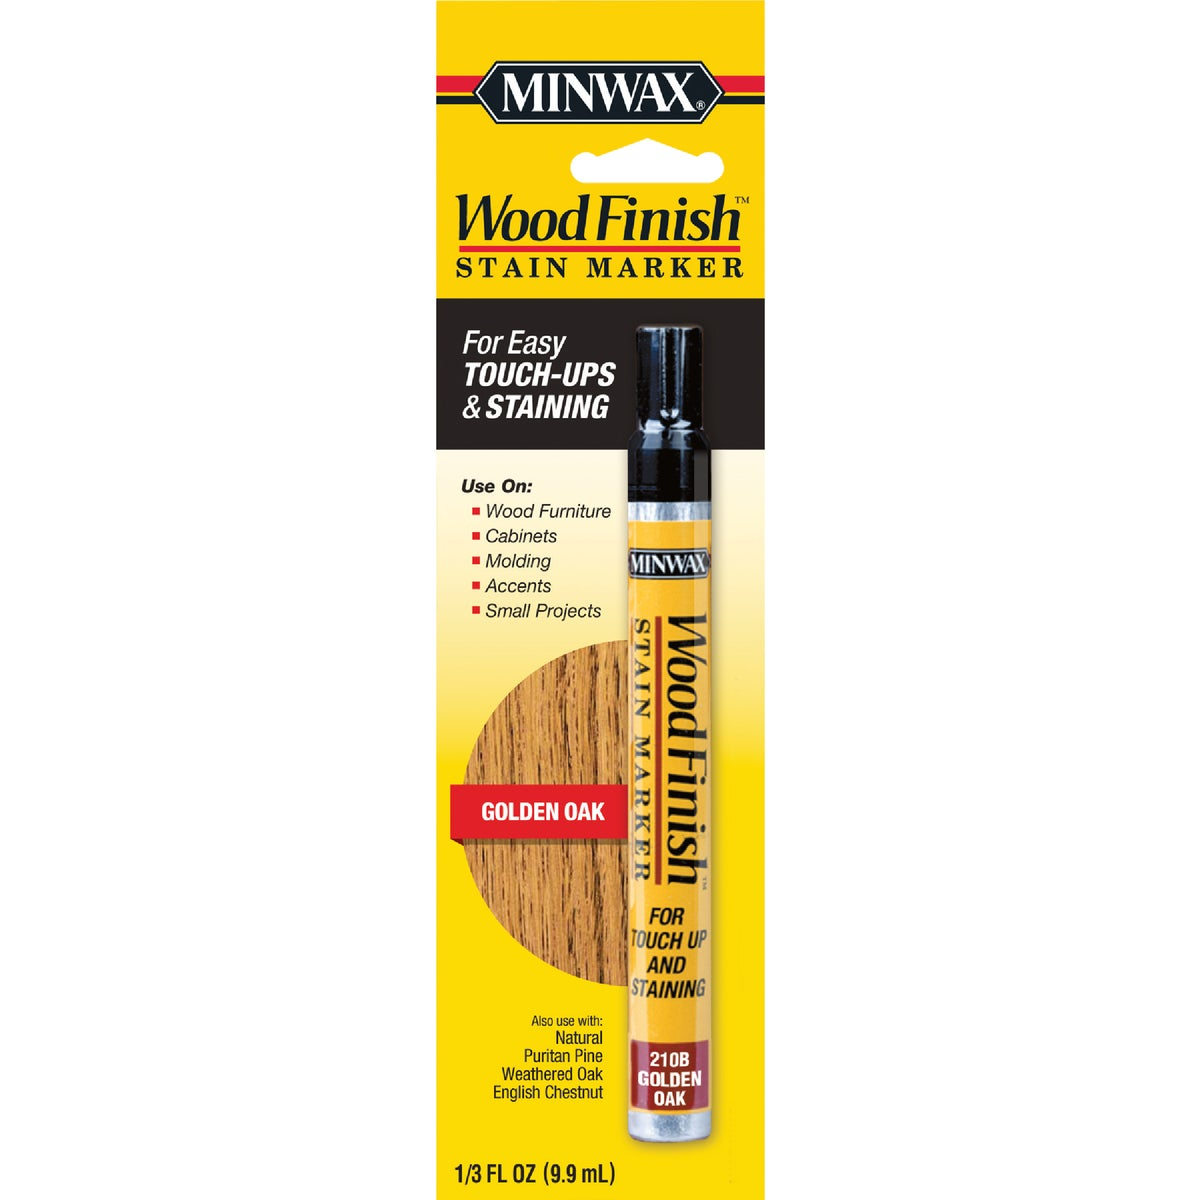 GOLDEN OAK STAIN MARKER